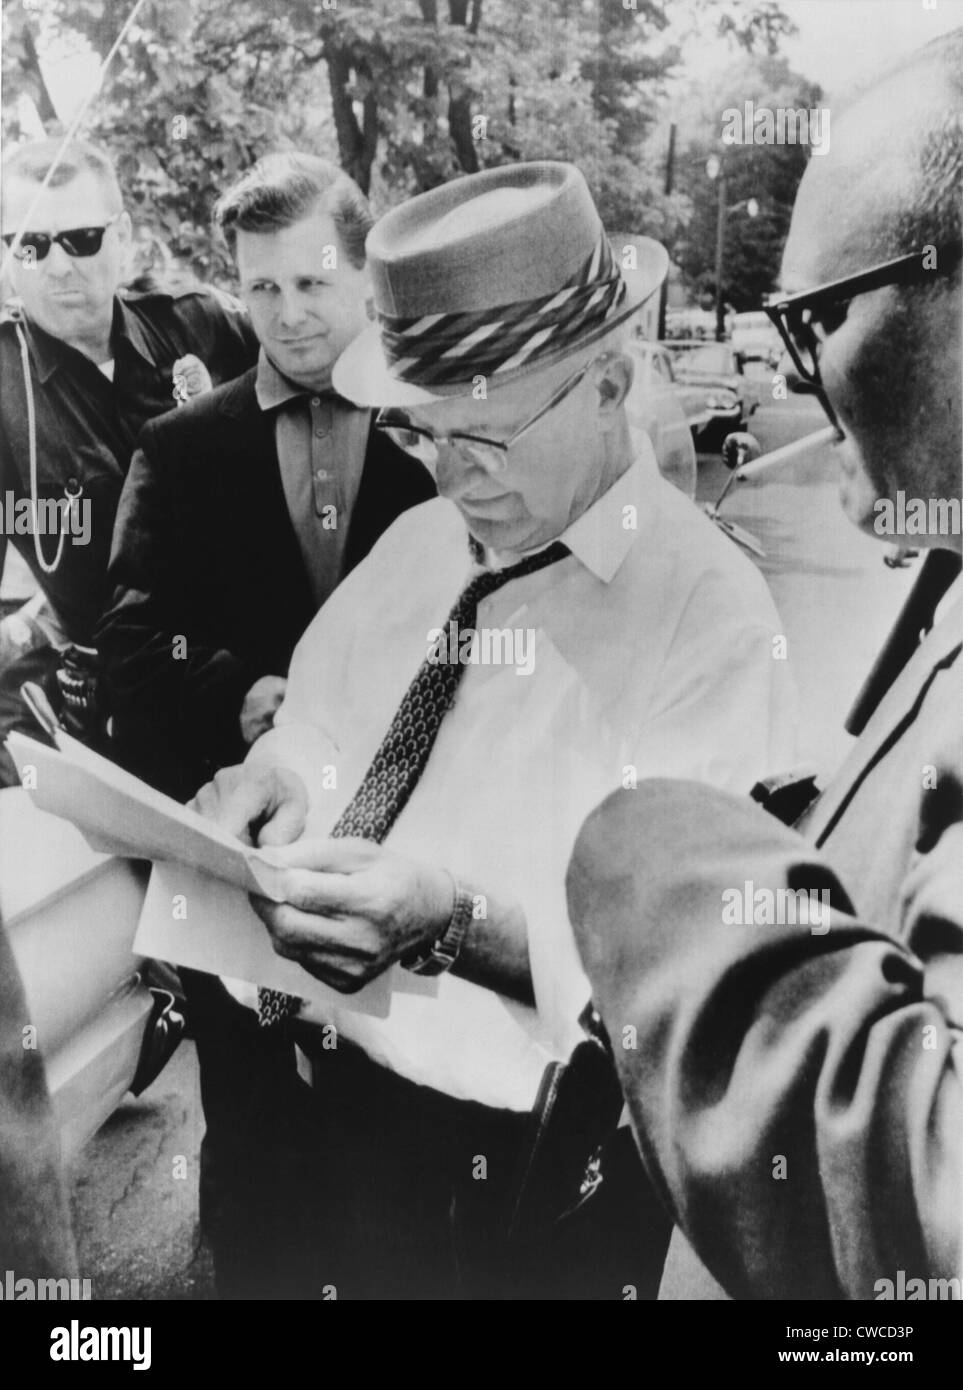 Eugene 'Bull' Connor, Birmingham, Alabama's notorious Commissioner of Public Safety. In 1963 he led - Stock Image